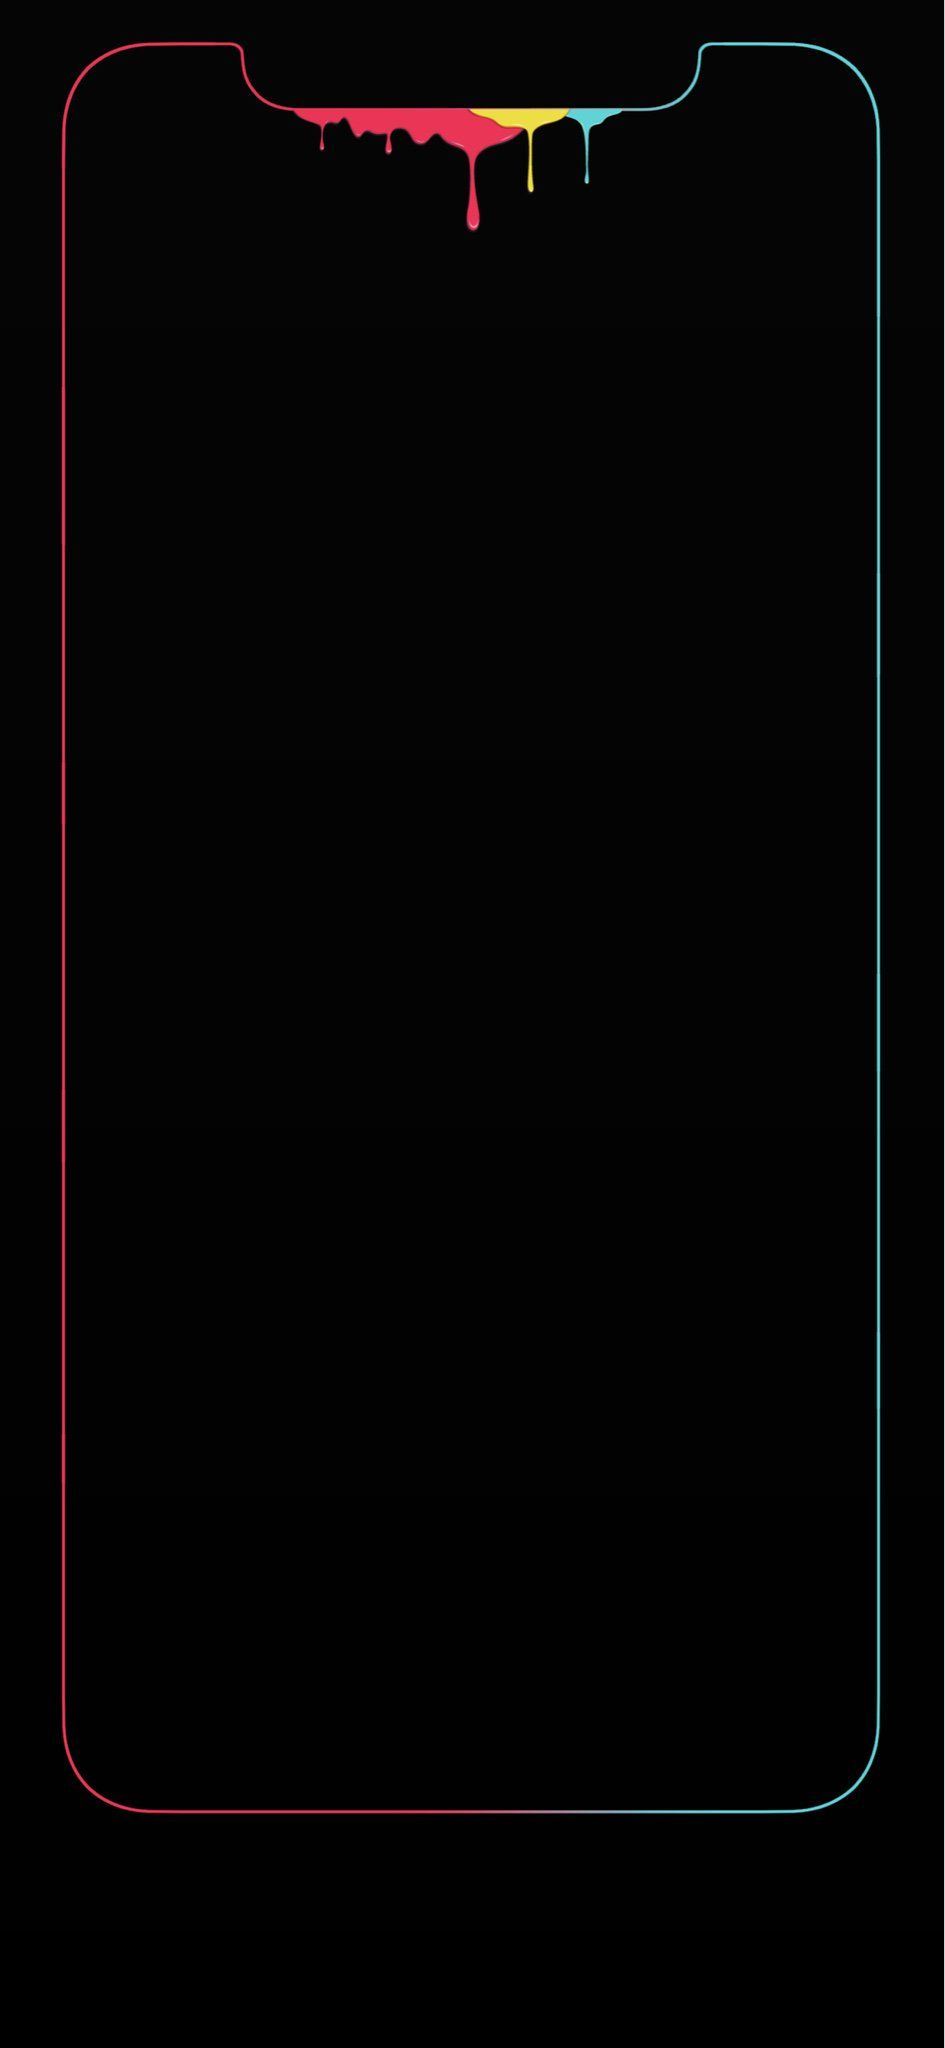 The Iphone X Xs Wallpaper Thread Page 53 Iphone Ipad Ipod Forums At Imore Com Dark Wallpaper Iphone Iphone Homescreen Wallpaper Black Wallpaper Iphone